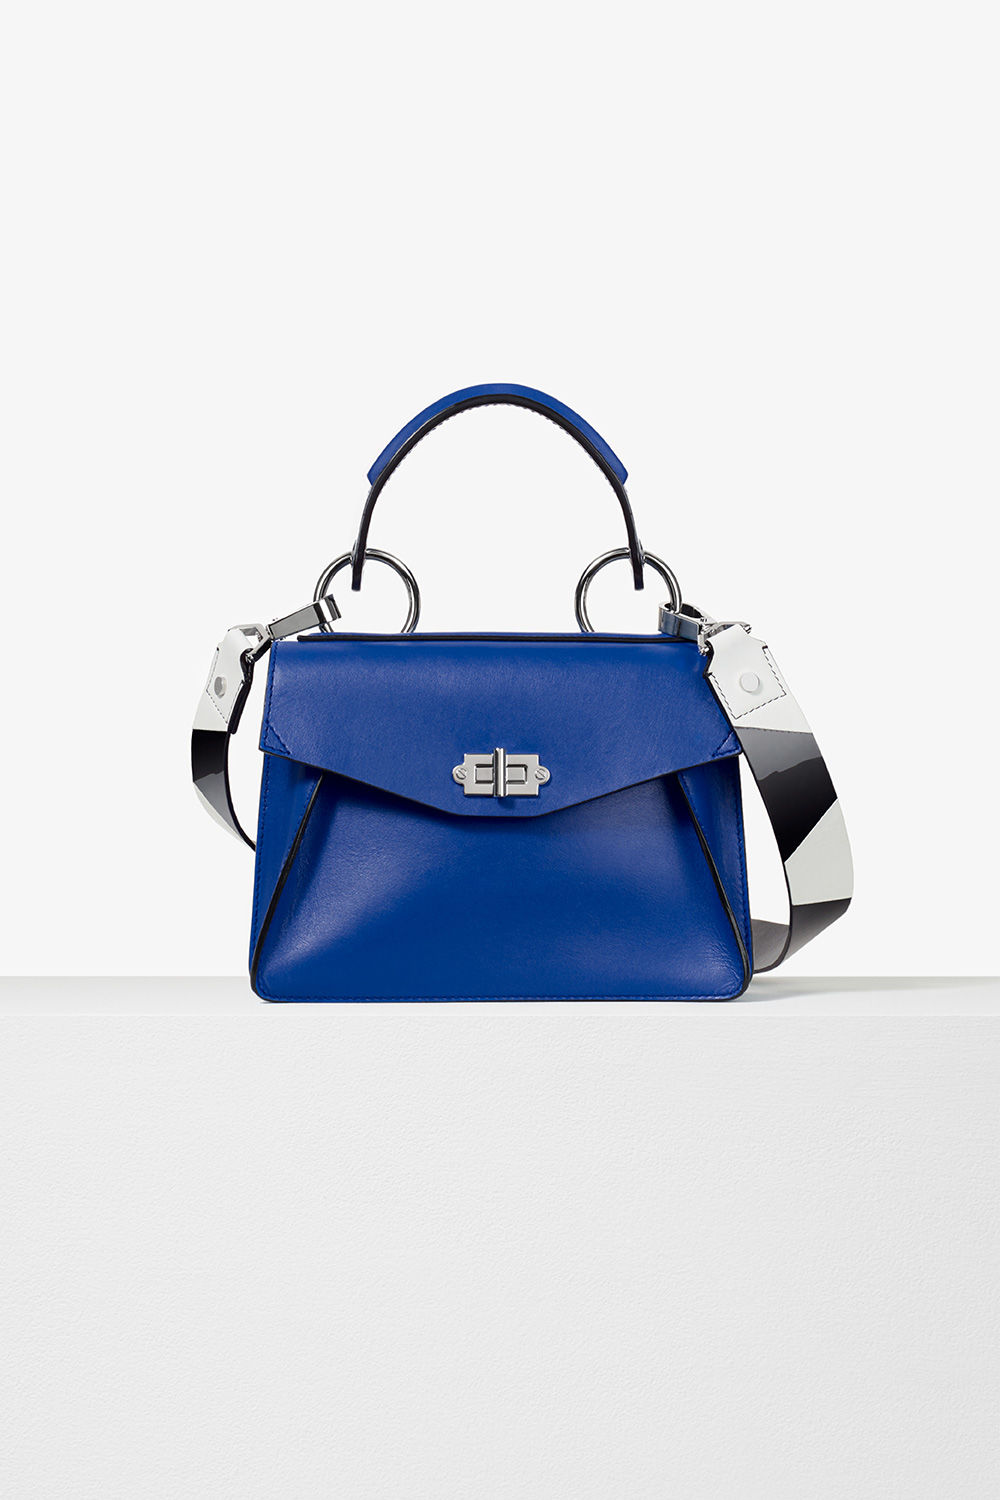 proenza schouler pre spring 2017 memphis blue black white smooth leather small hava top handle bag with patchwork strap